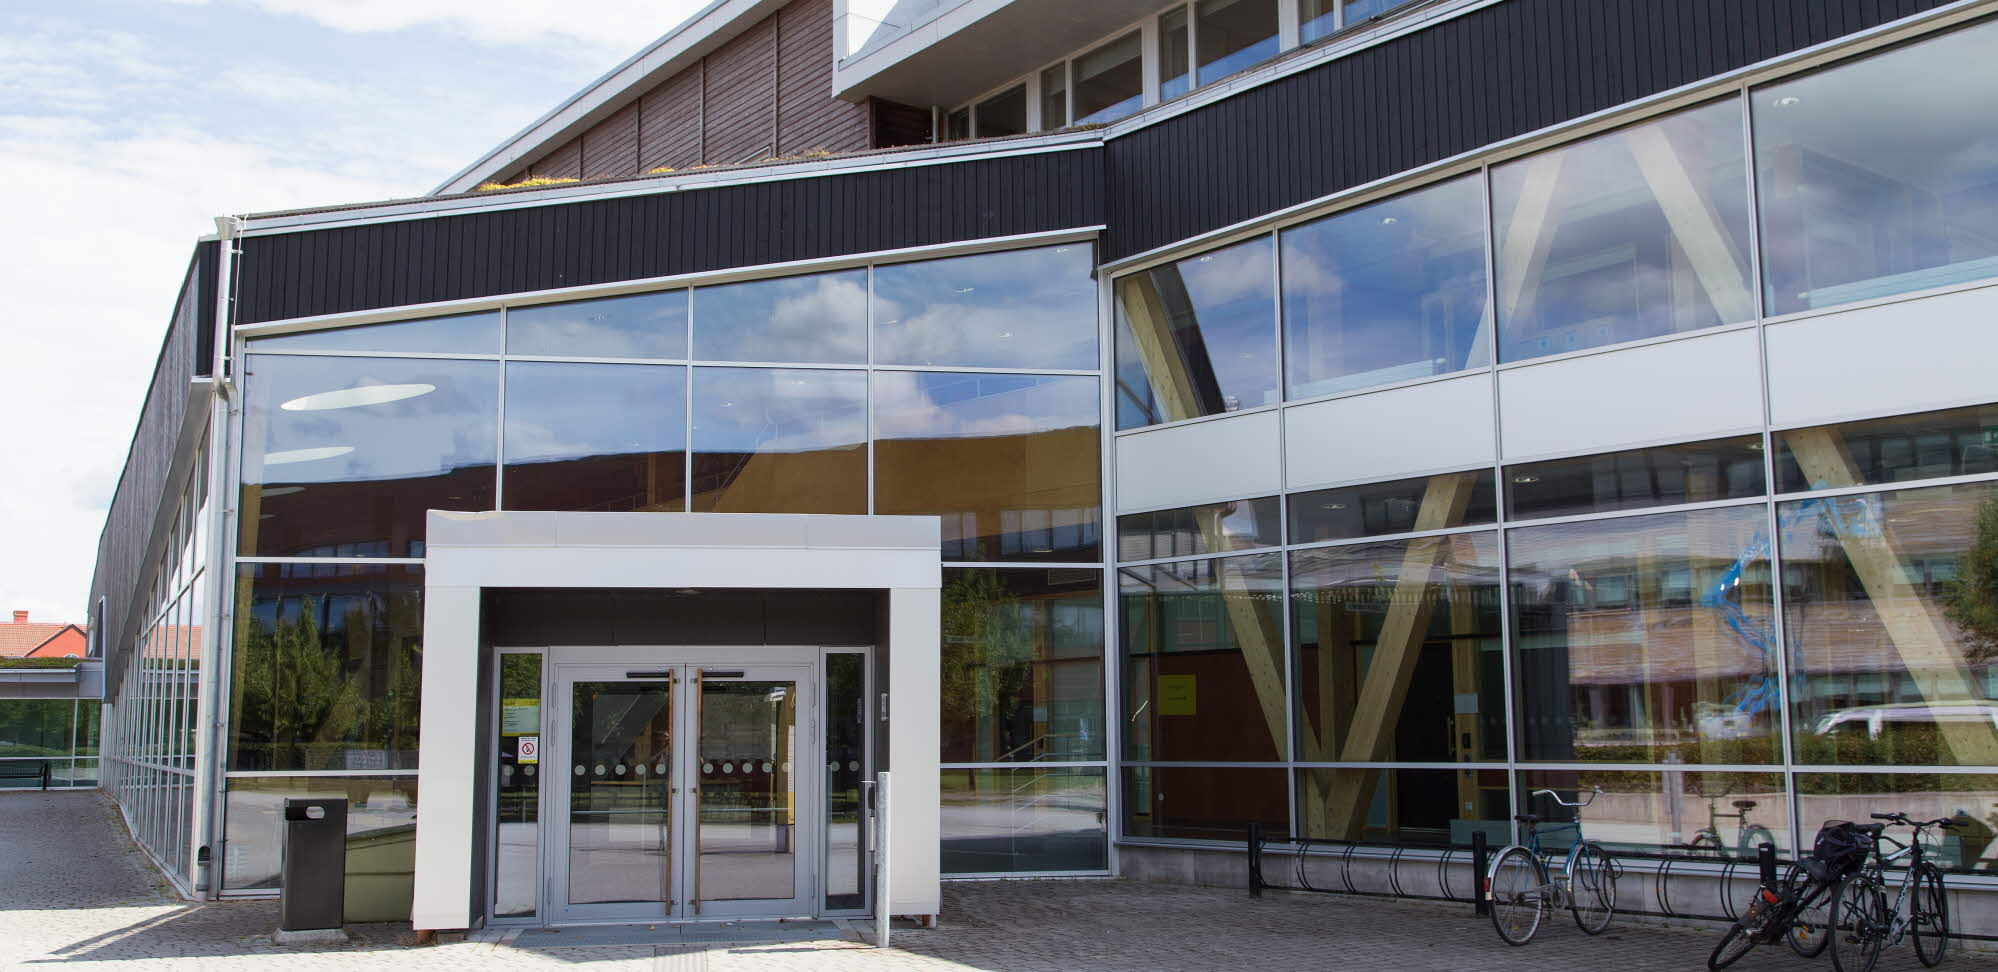 Building N at the Växjö campus